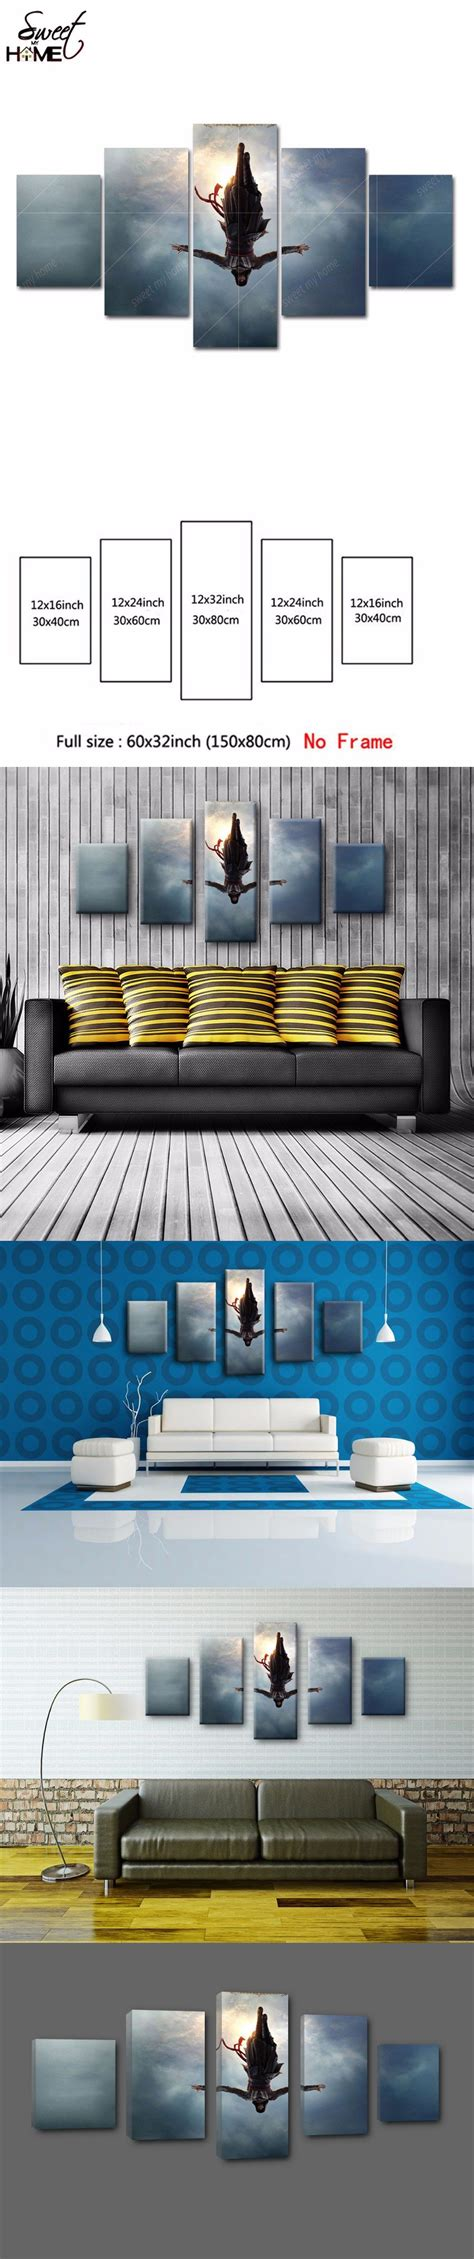 Floor And Decor Clearwater Fl Home Zone Wallpaper Shop Northfield Wallpaper Home